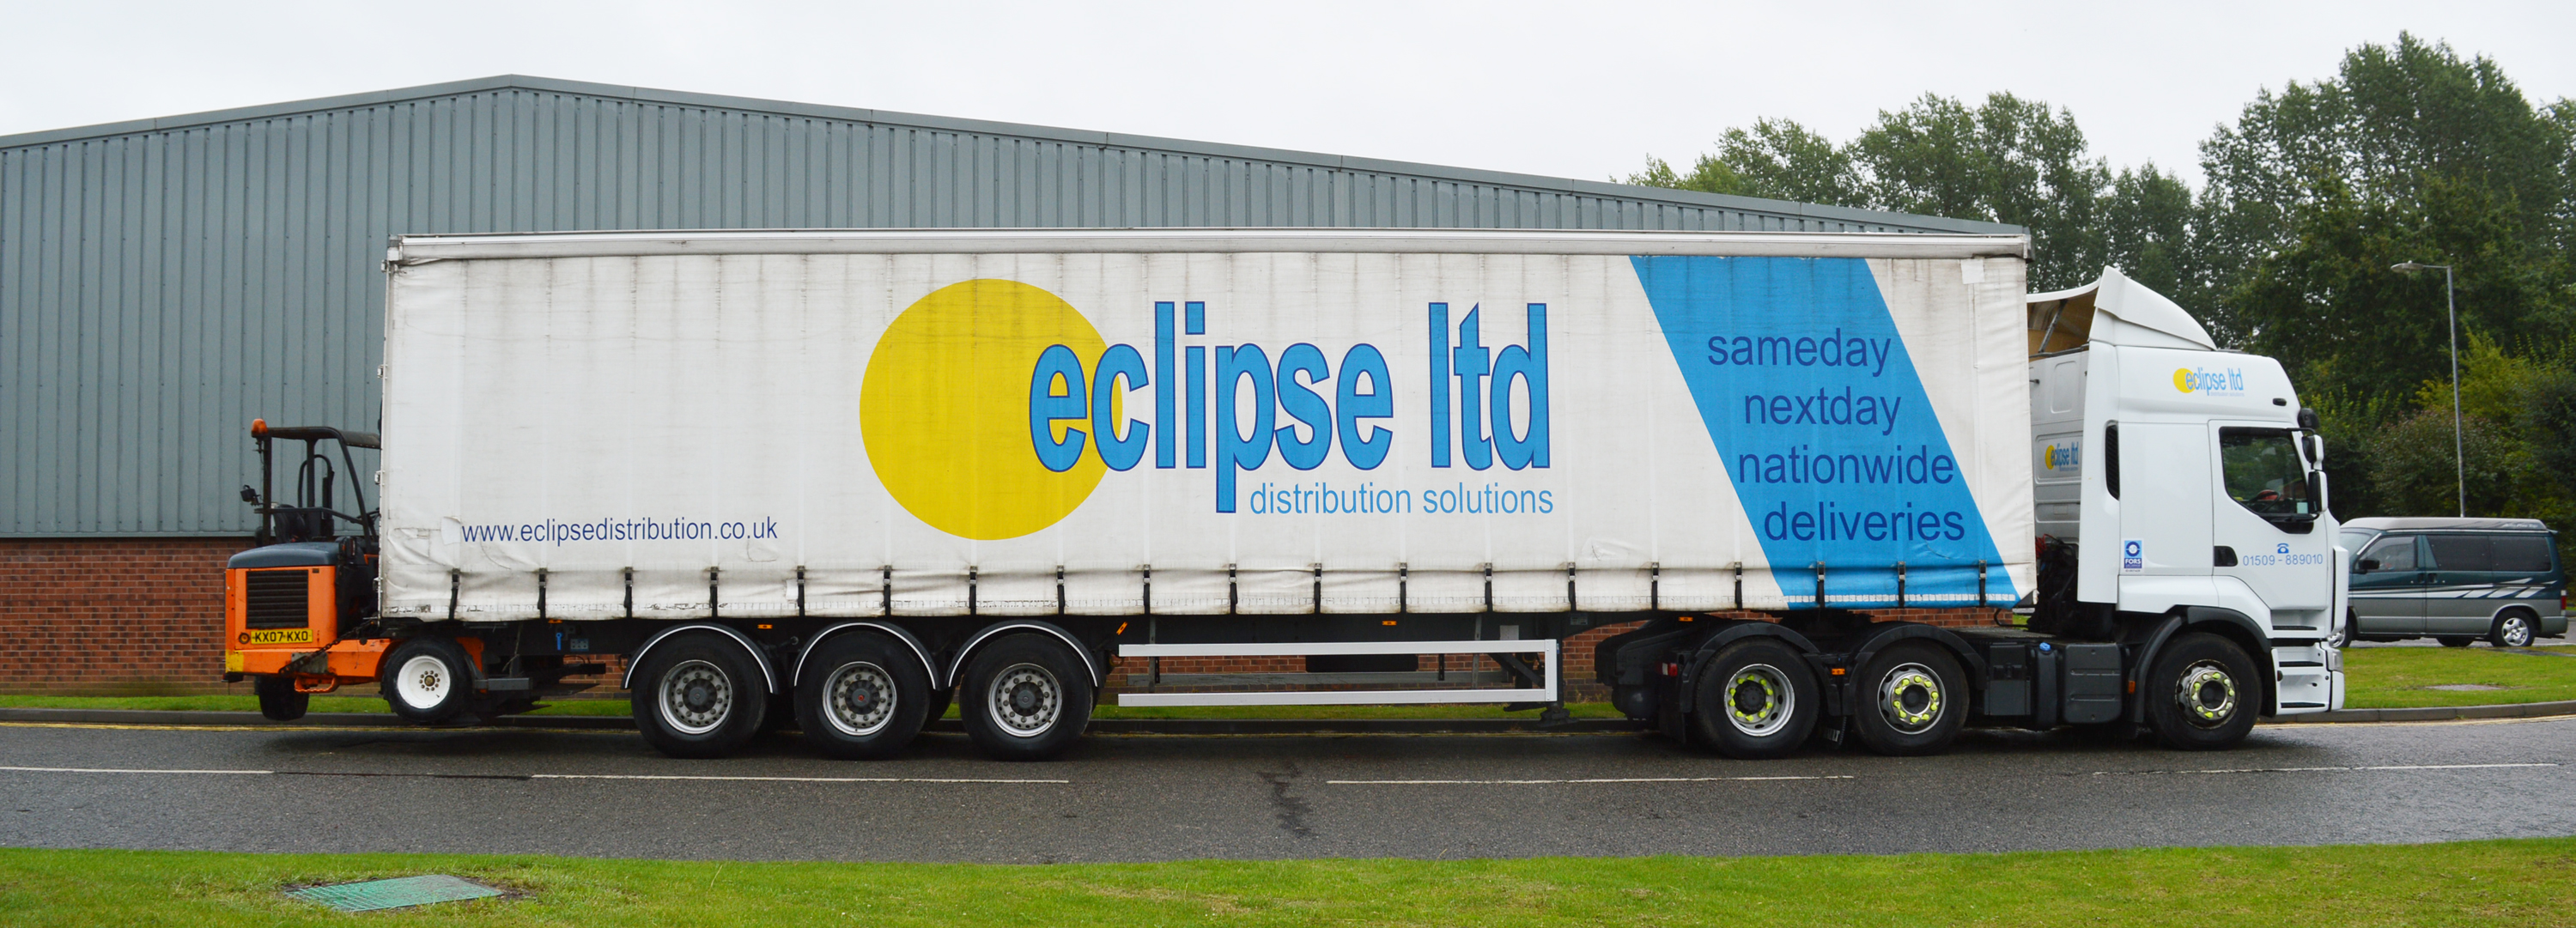 An image showing the side view of an Eclipse Distribution Solutions Ltd lorry parked outside.